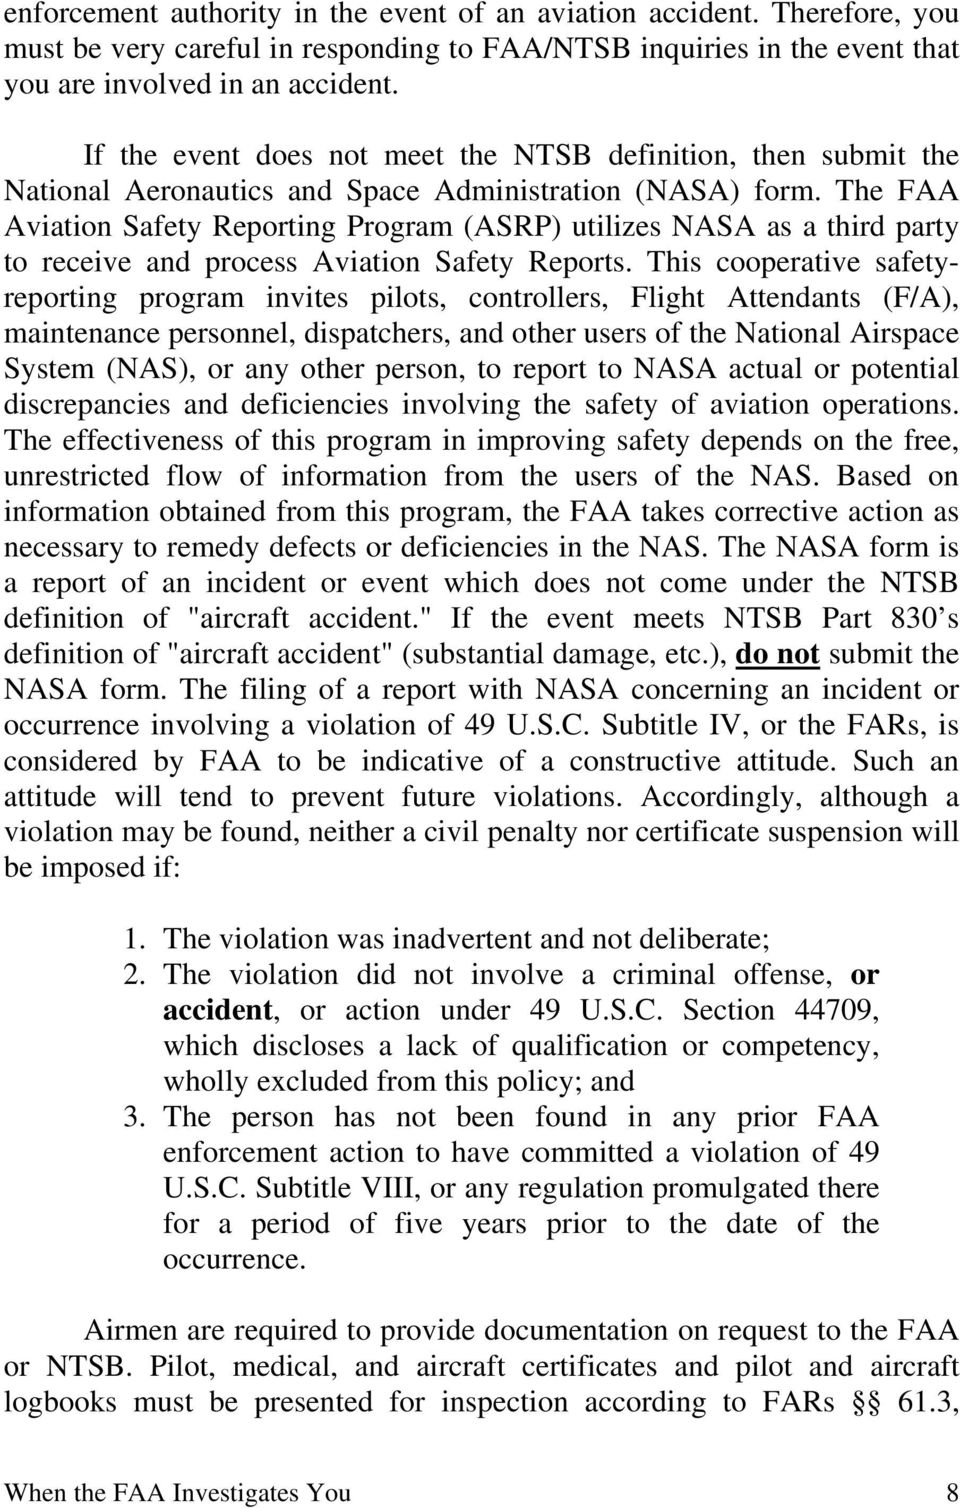 The FAA Aviation Safety Reporting Program (ASRP) utilizes NASA as a third party to receive and process Aviation Safety Reports.